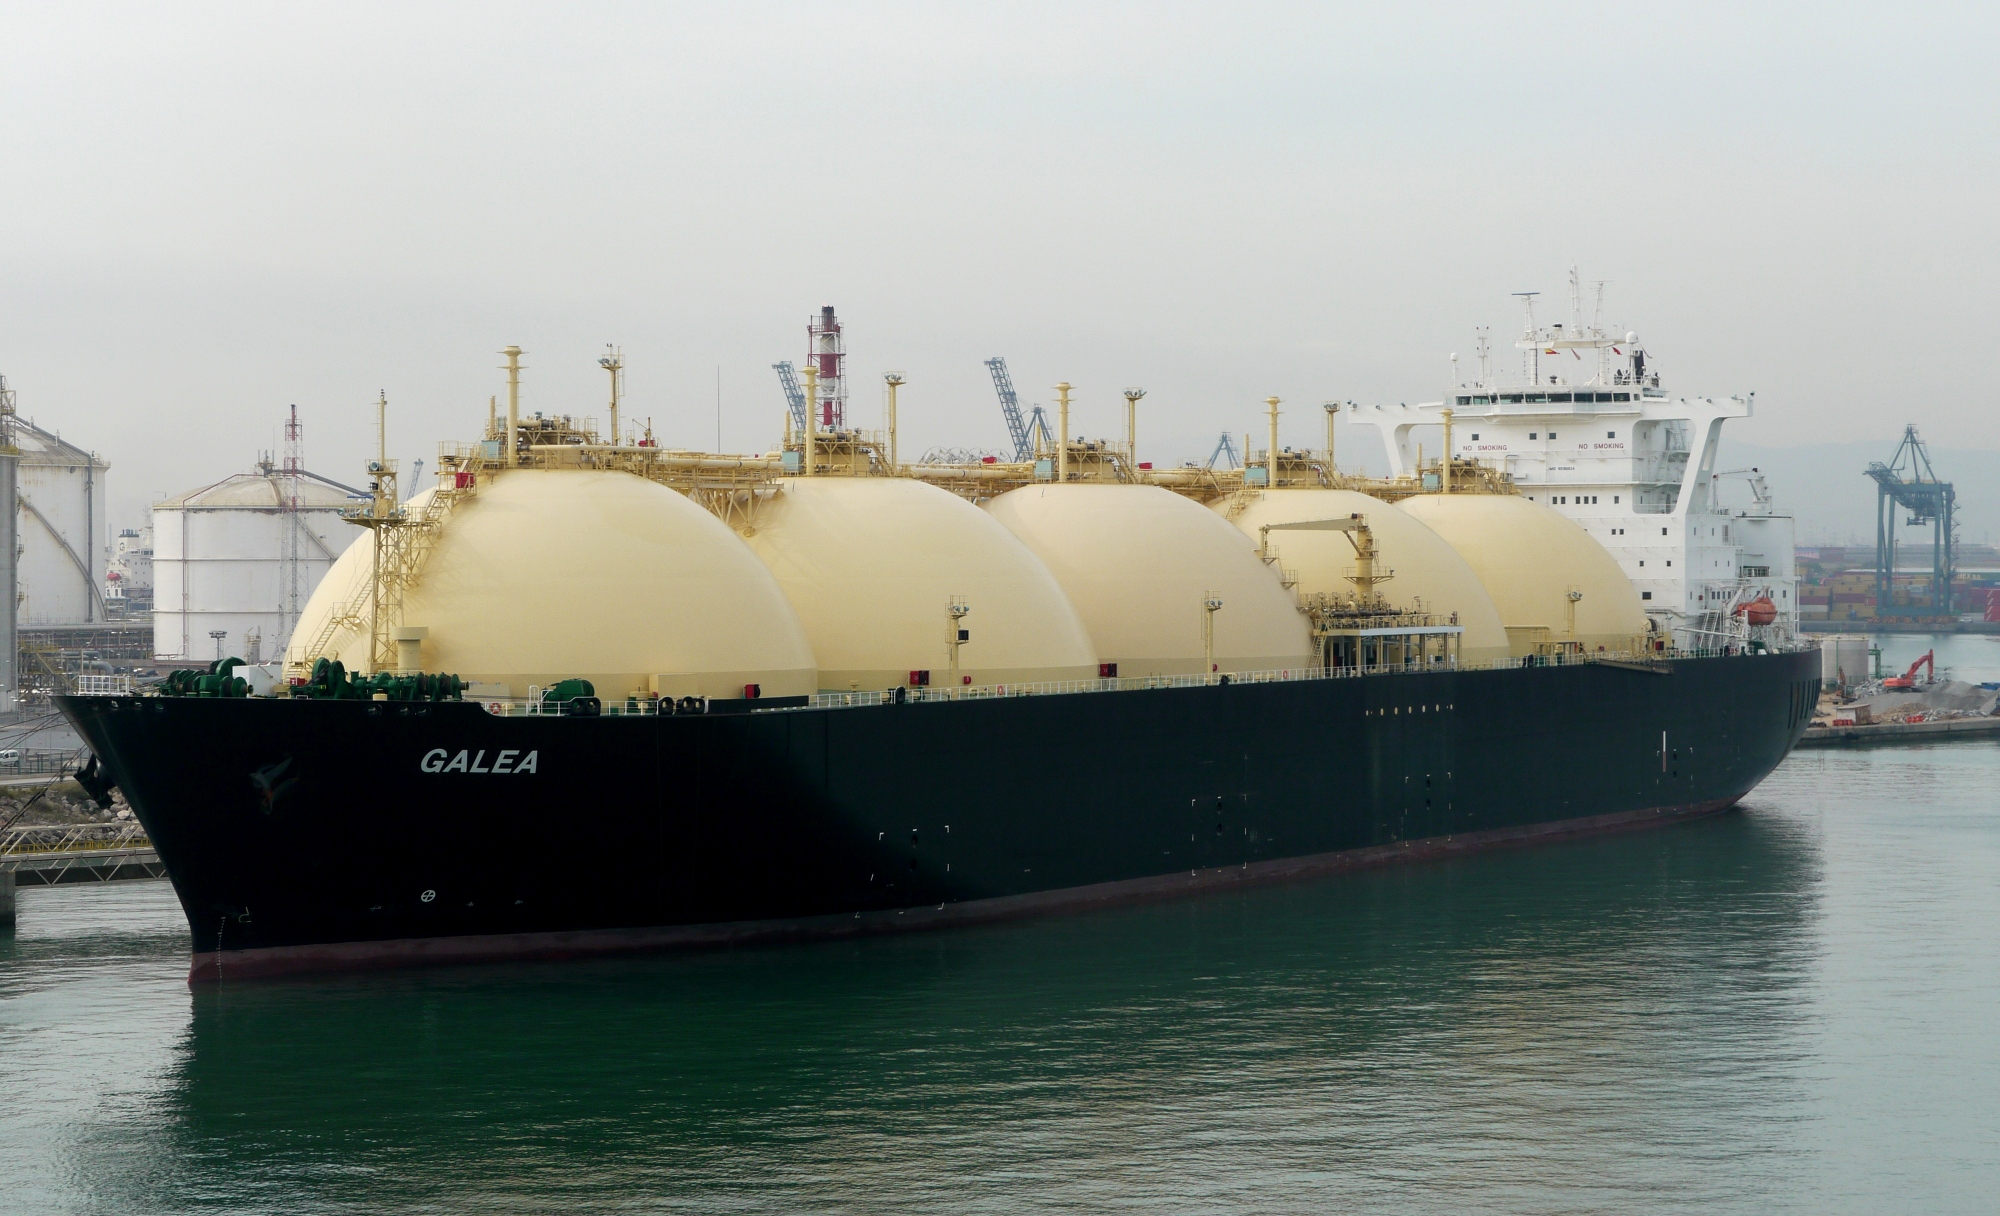 Taxpayers are subsidizing LNG exports